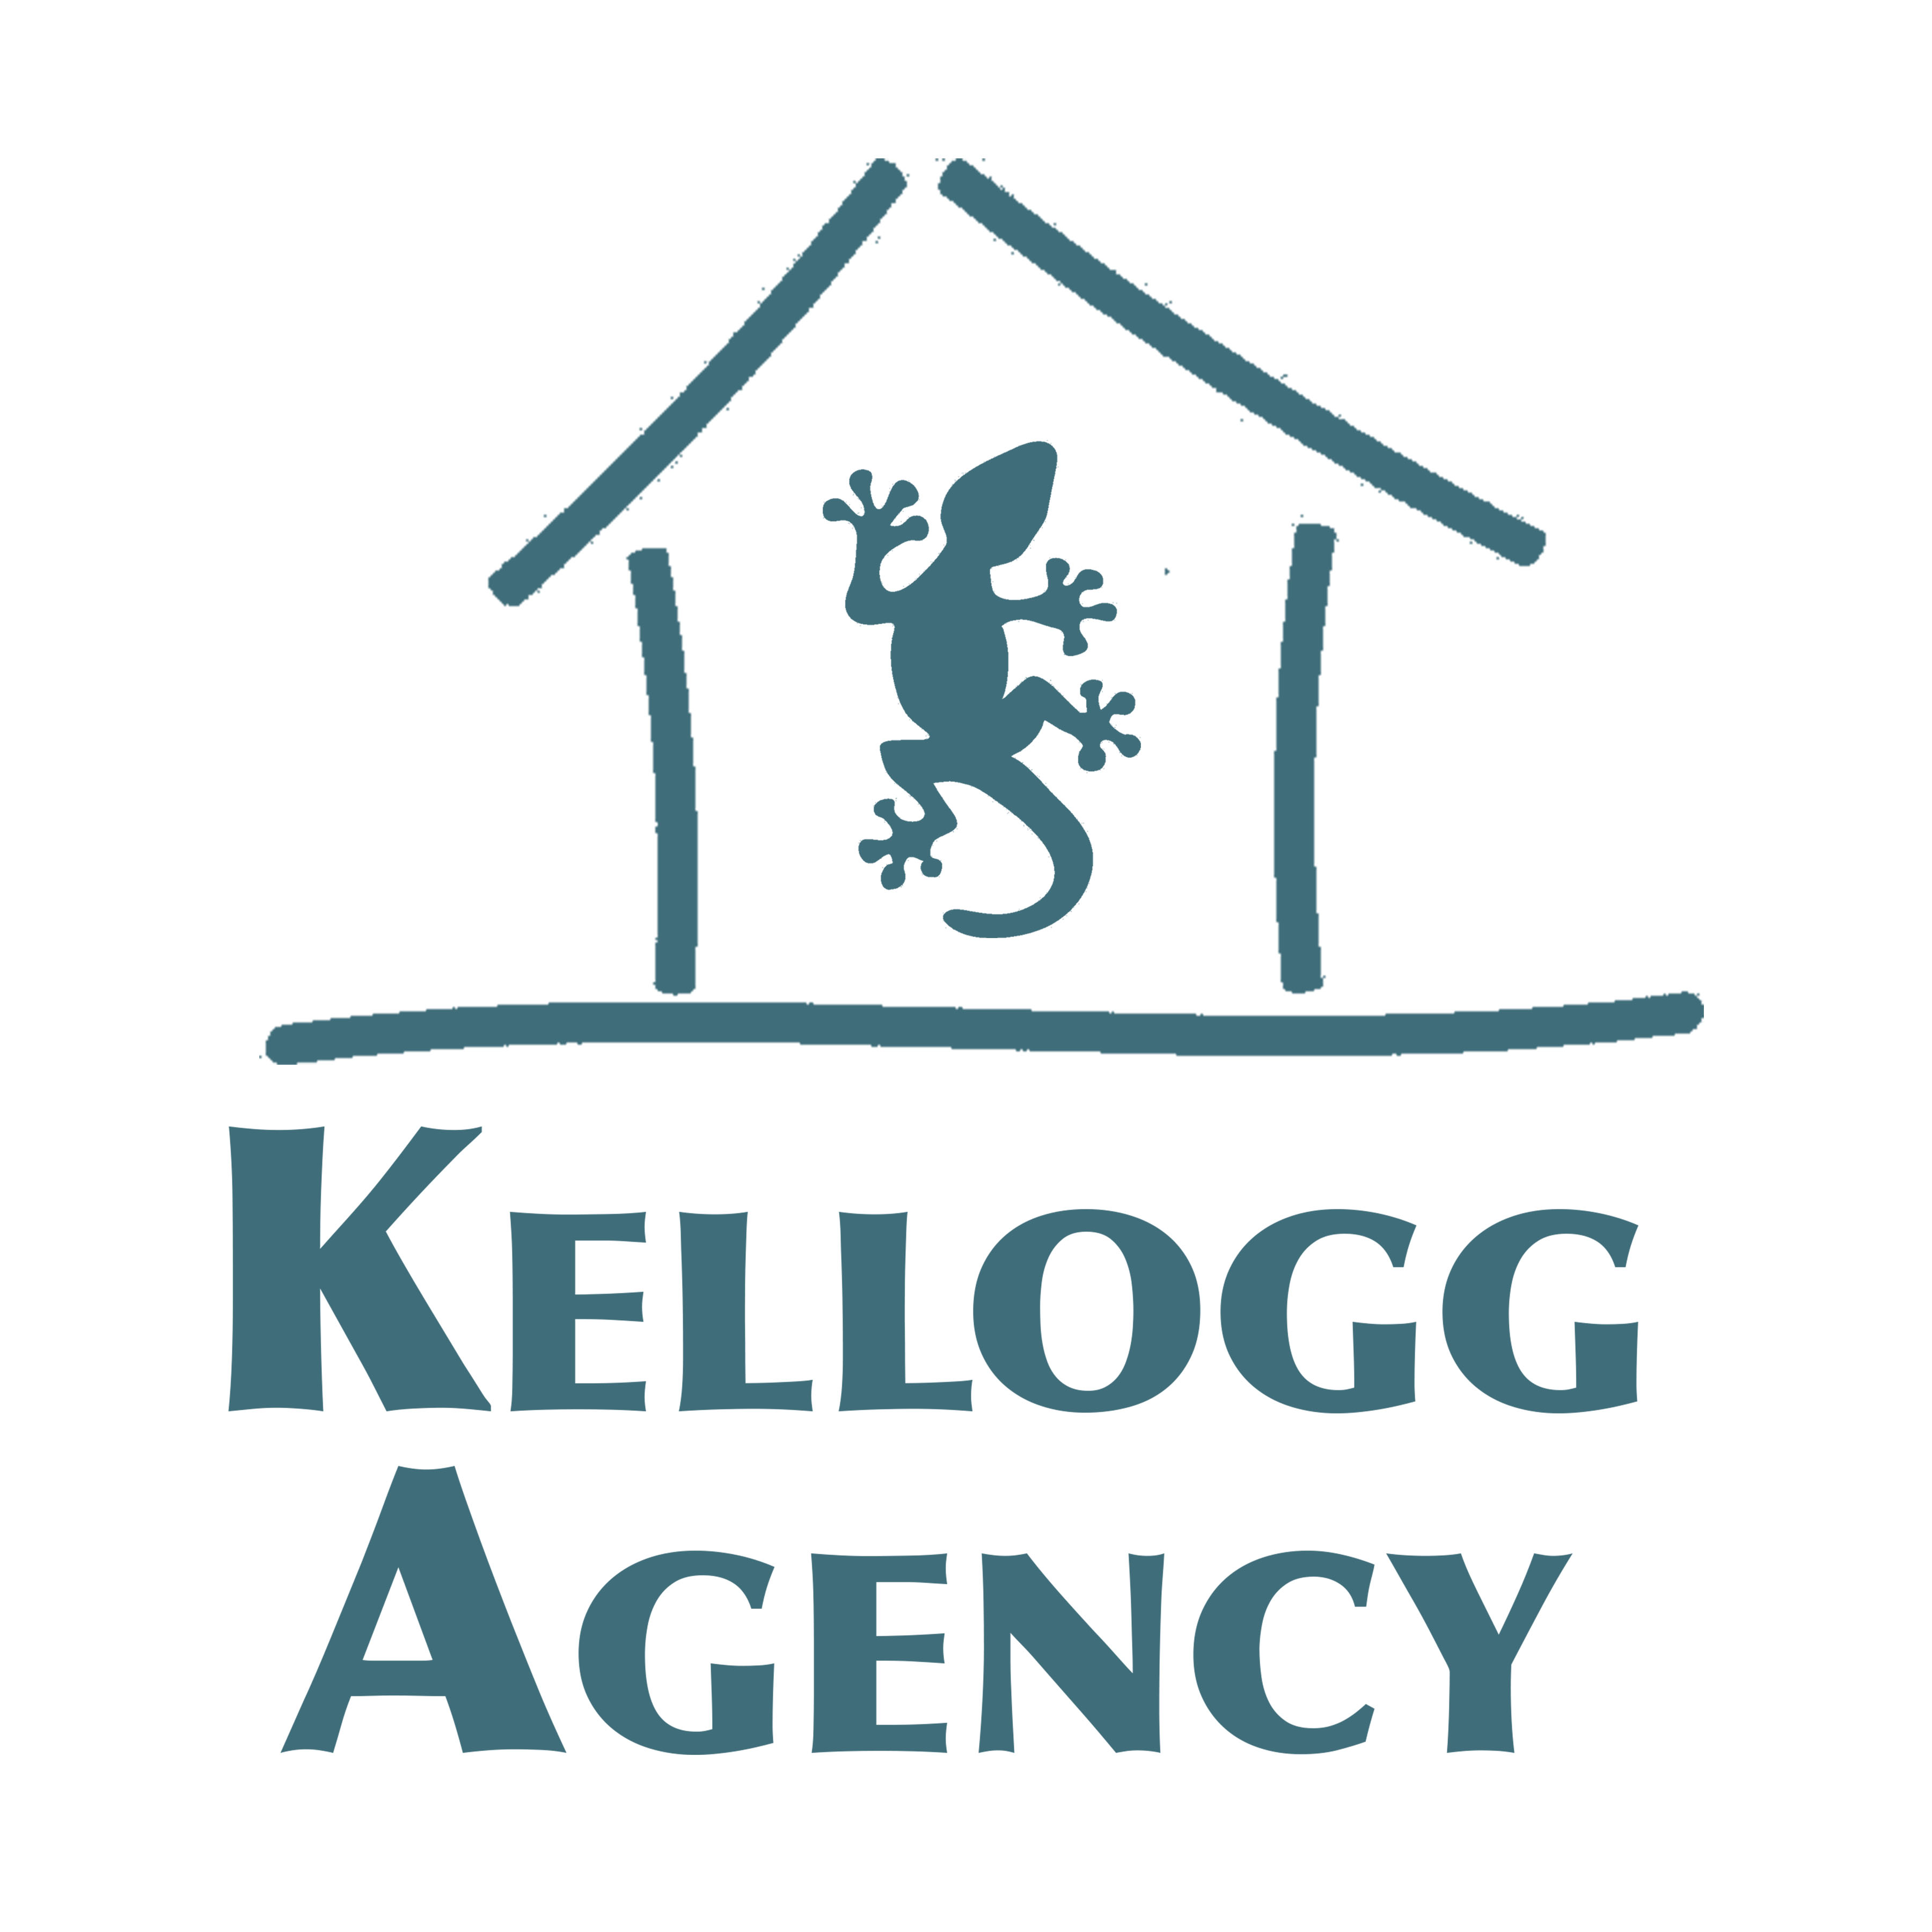 Kellogg Agency, Inc.